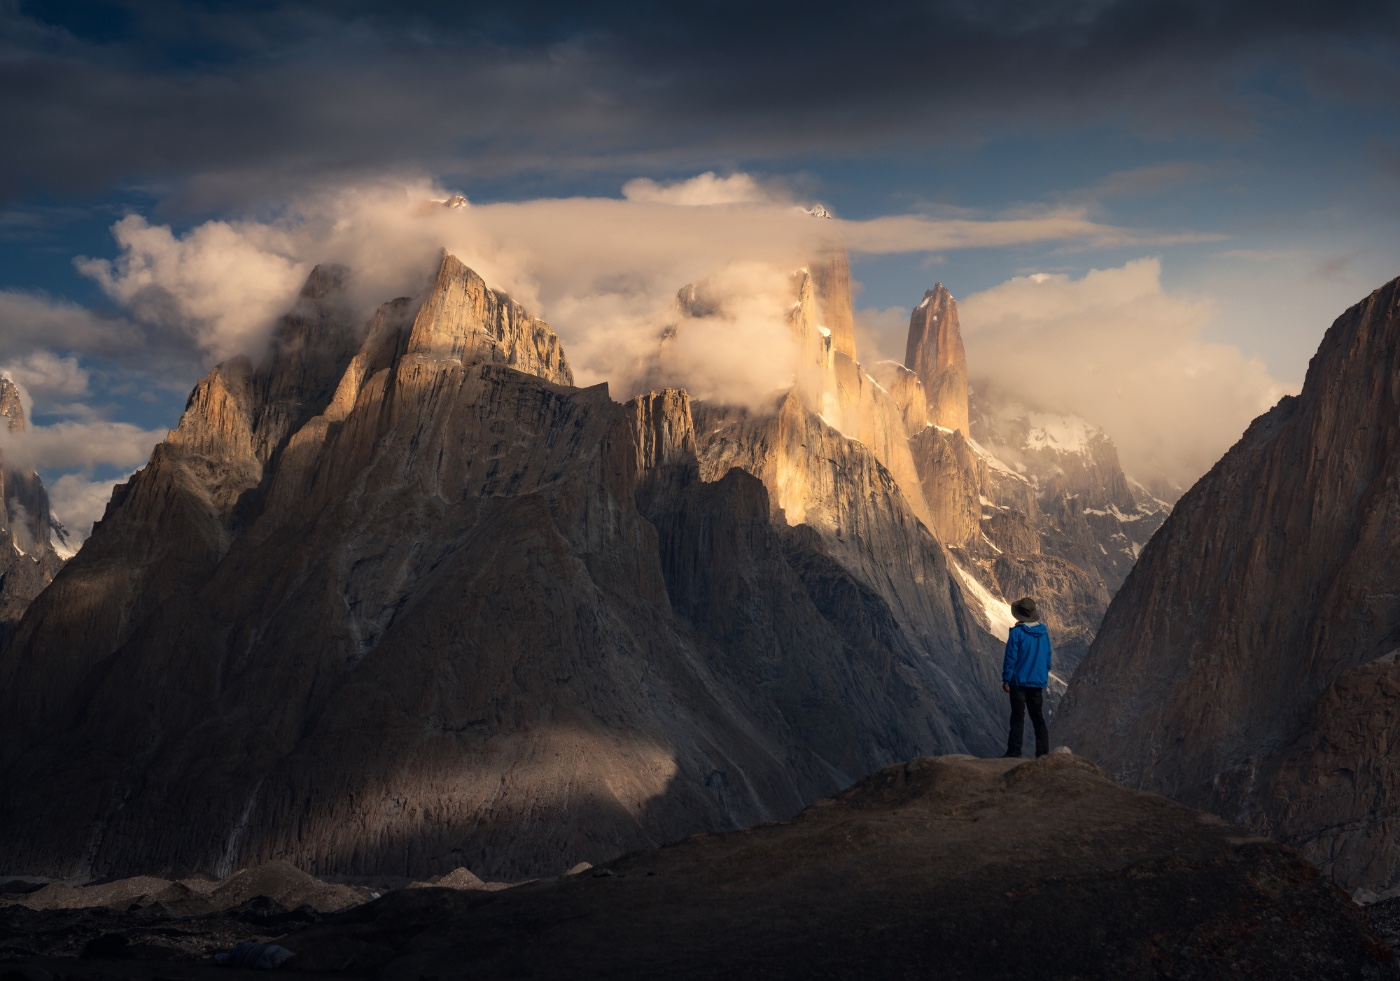 Trango-Towers-revealing-itself-from-the-mist-amid-showers.jpg